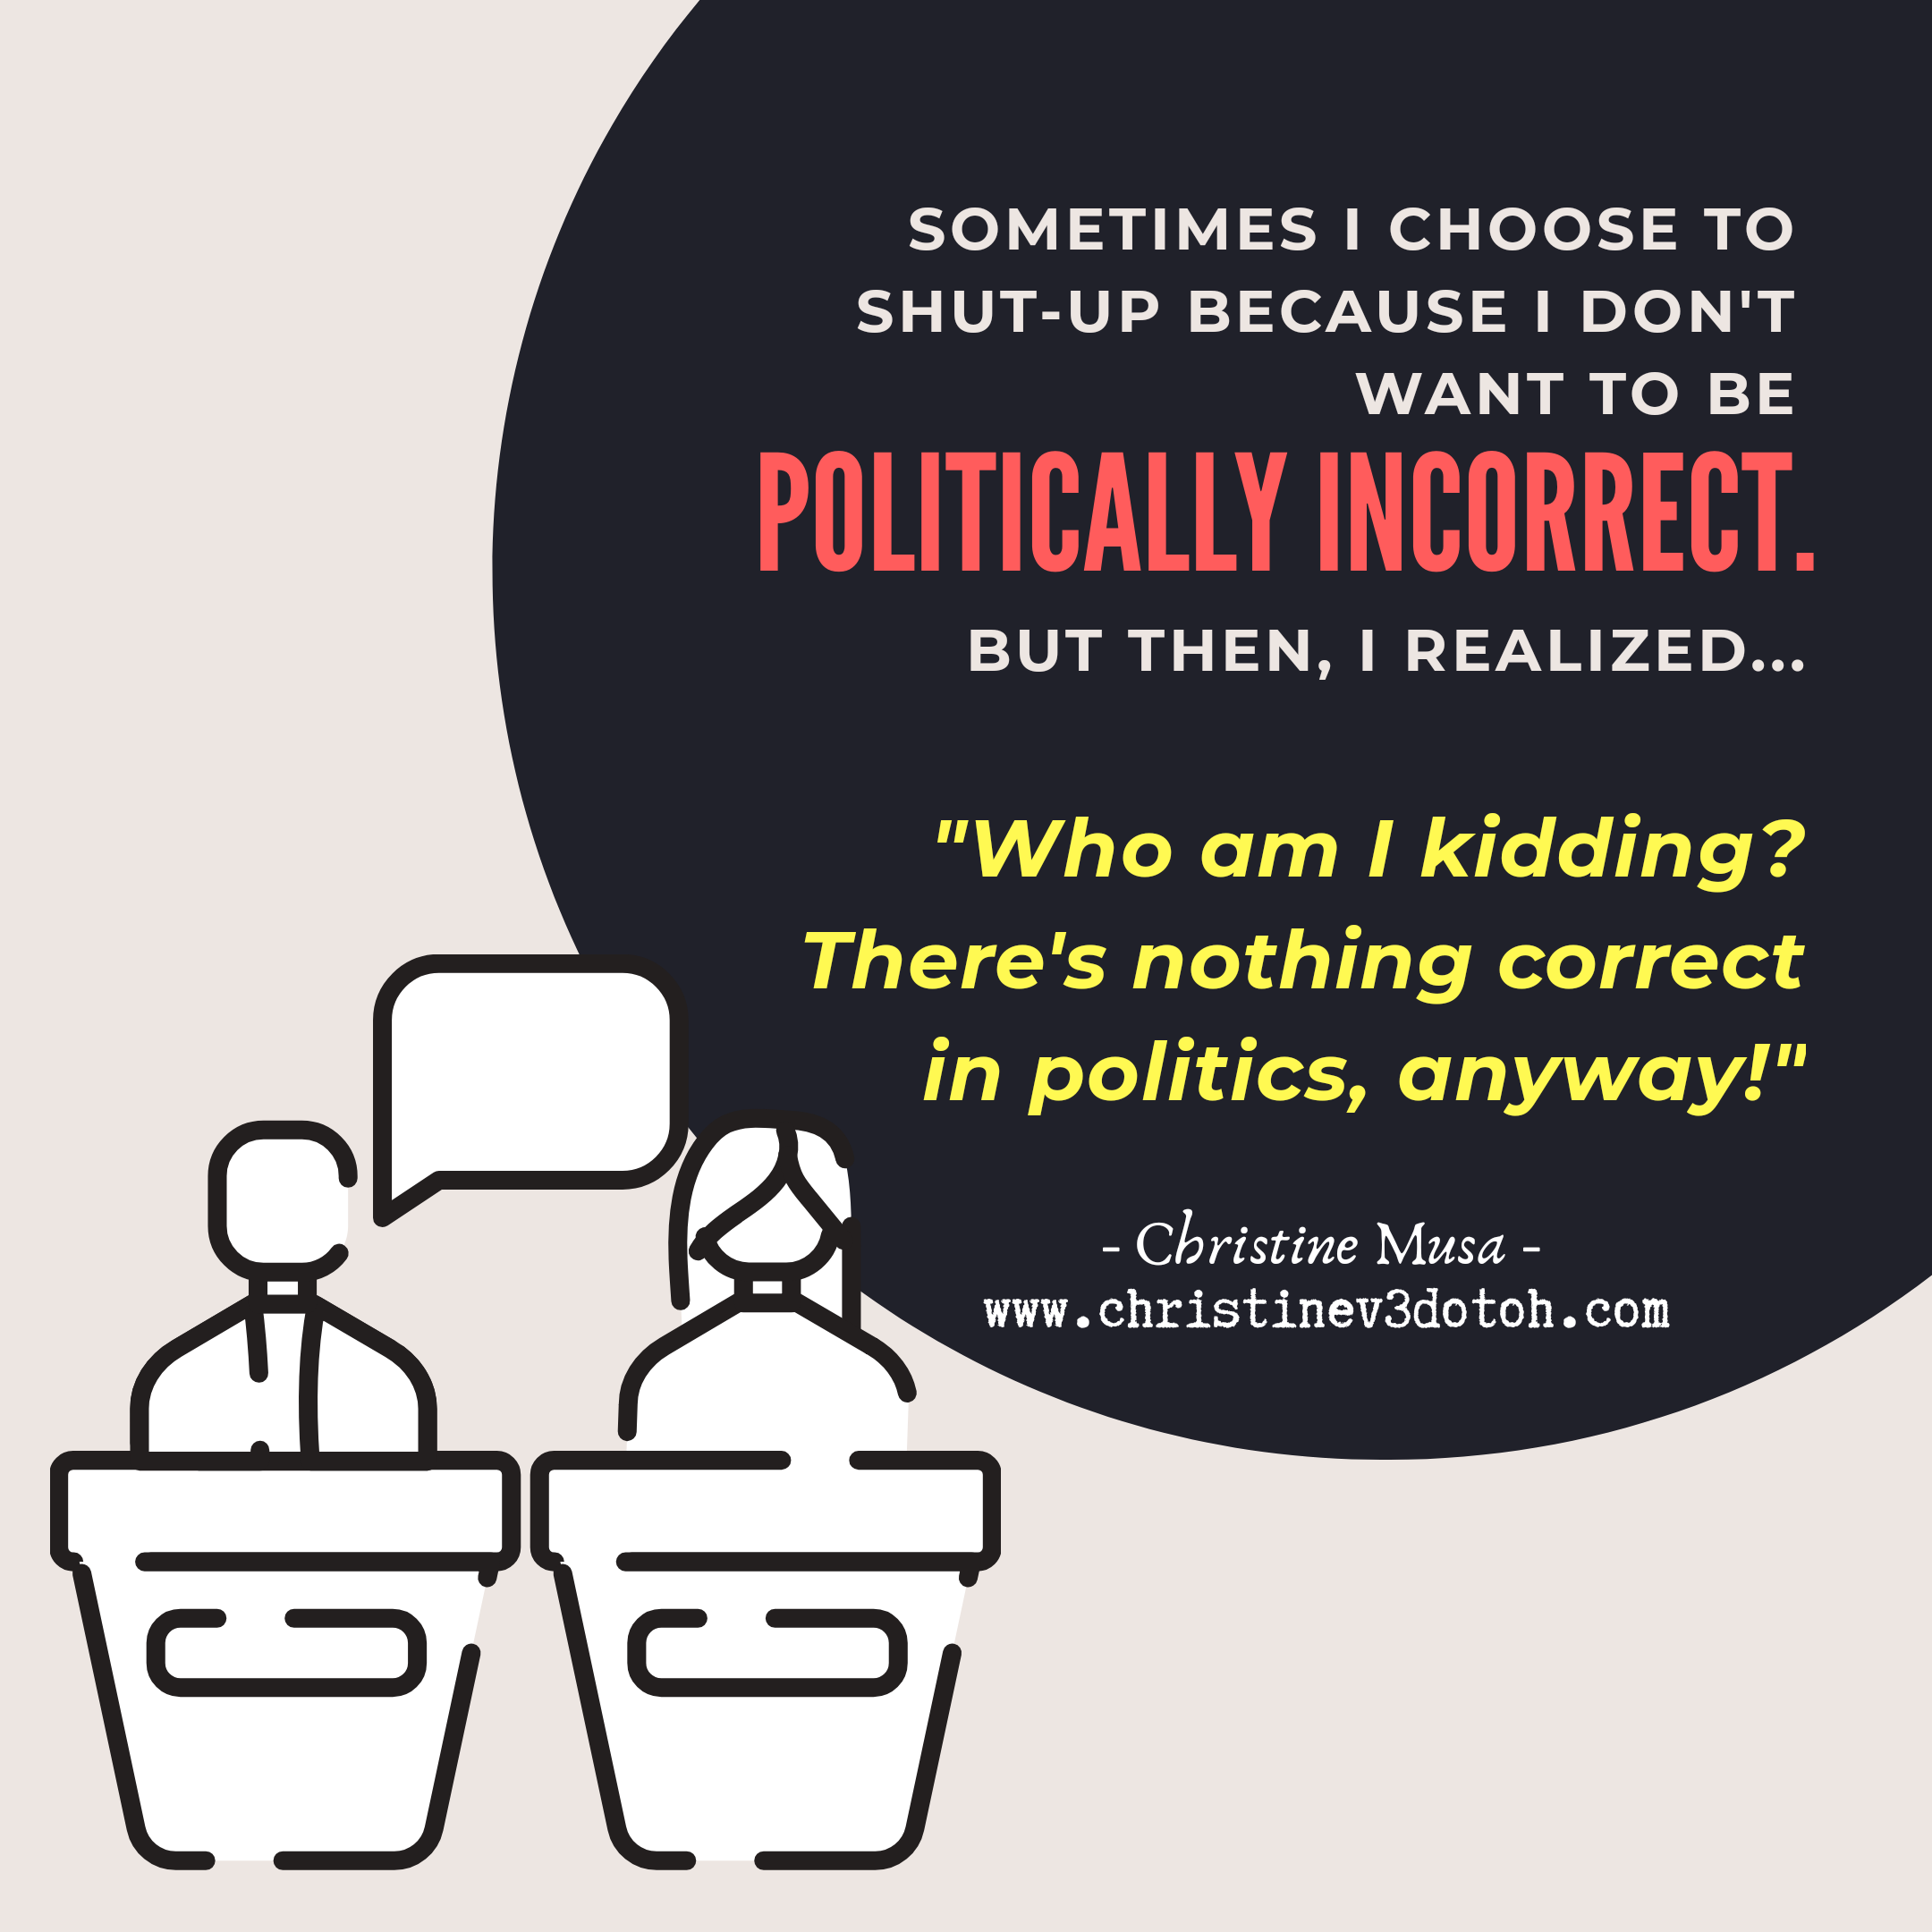 127.-Theres-Nothing-Correct-in-Politics